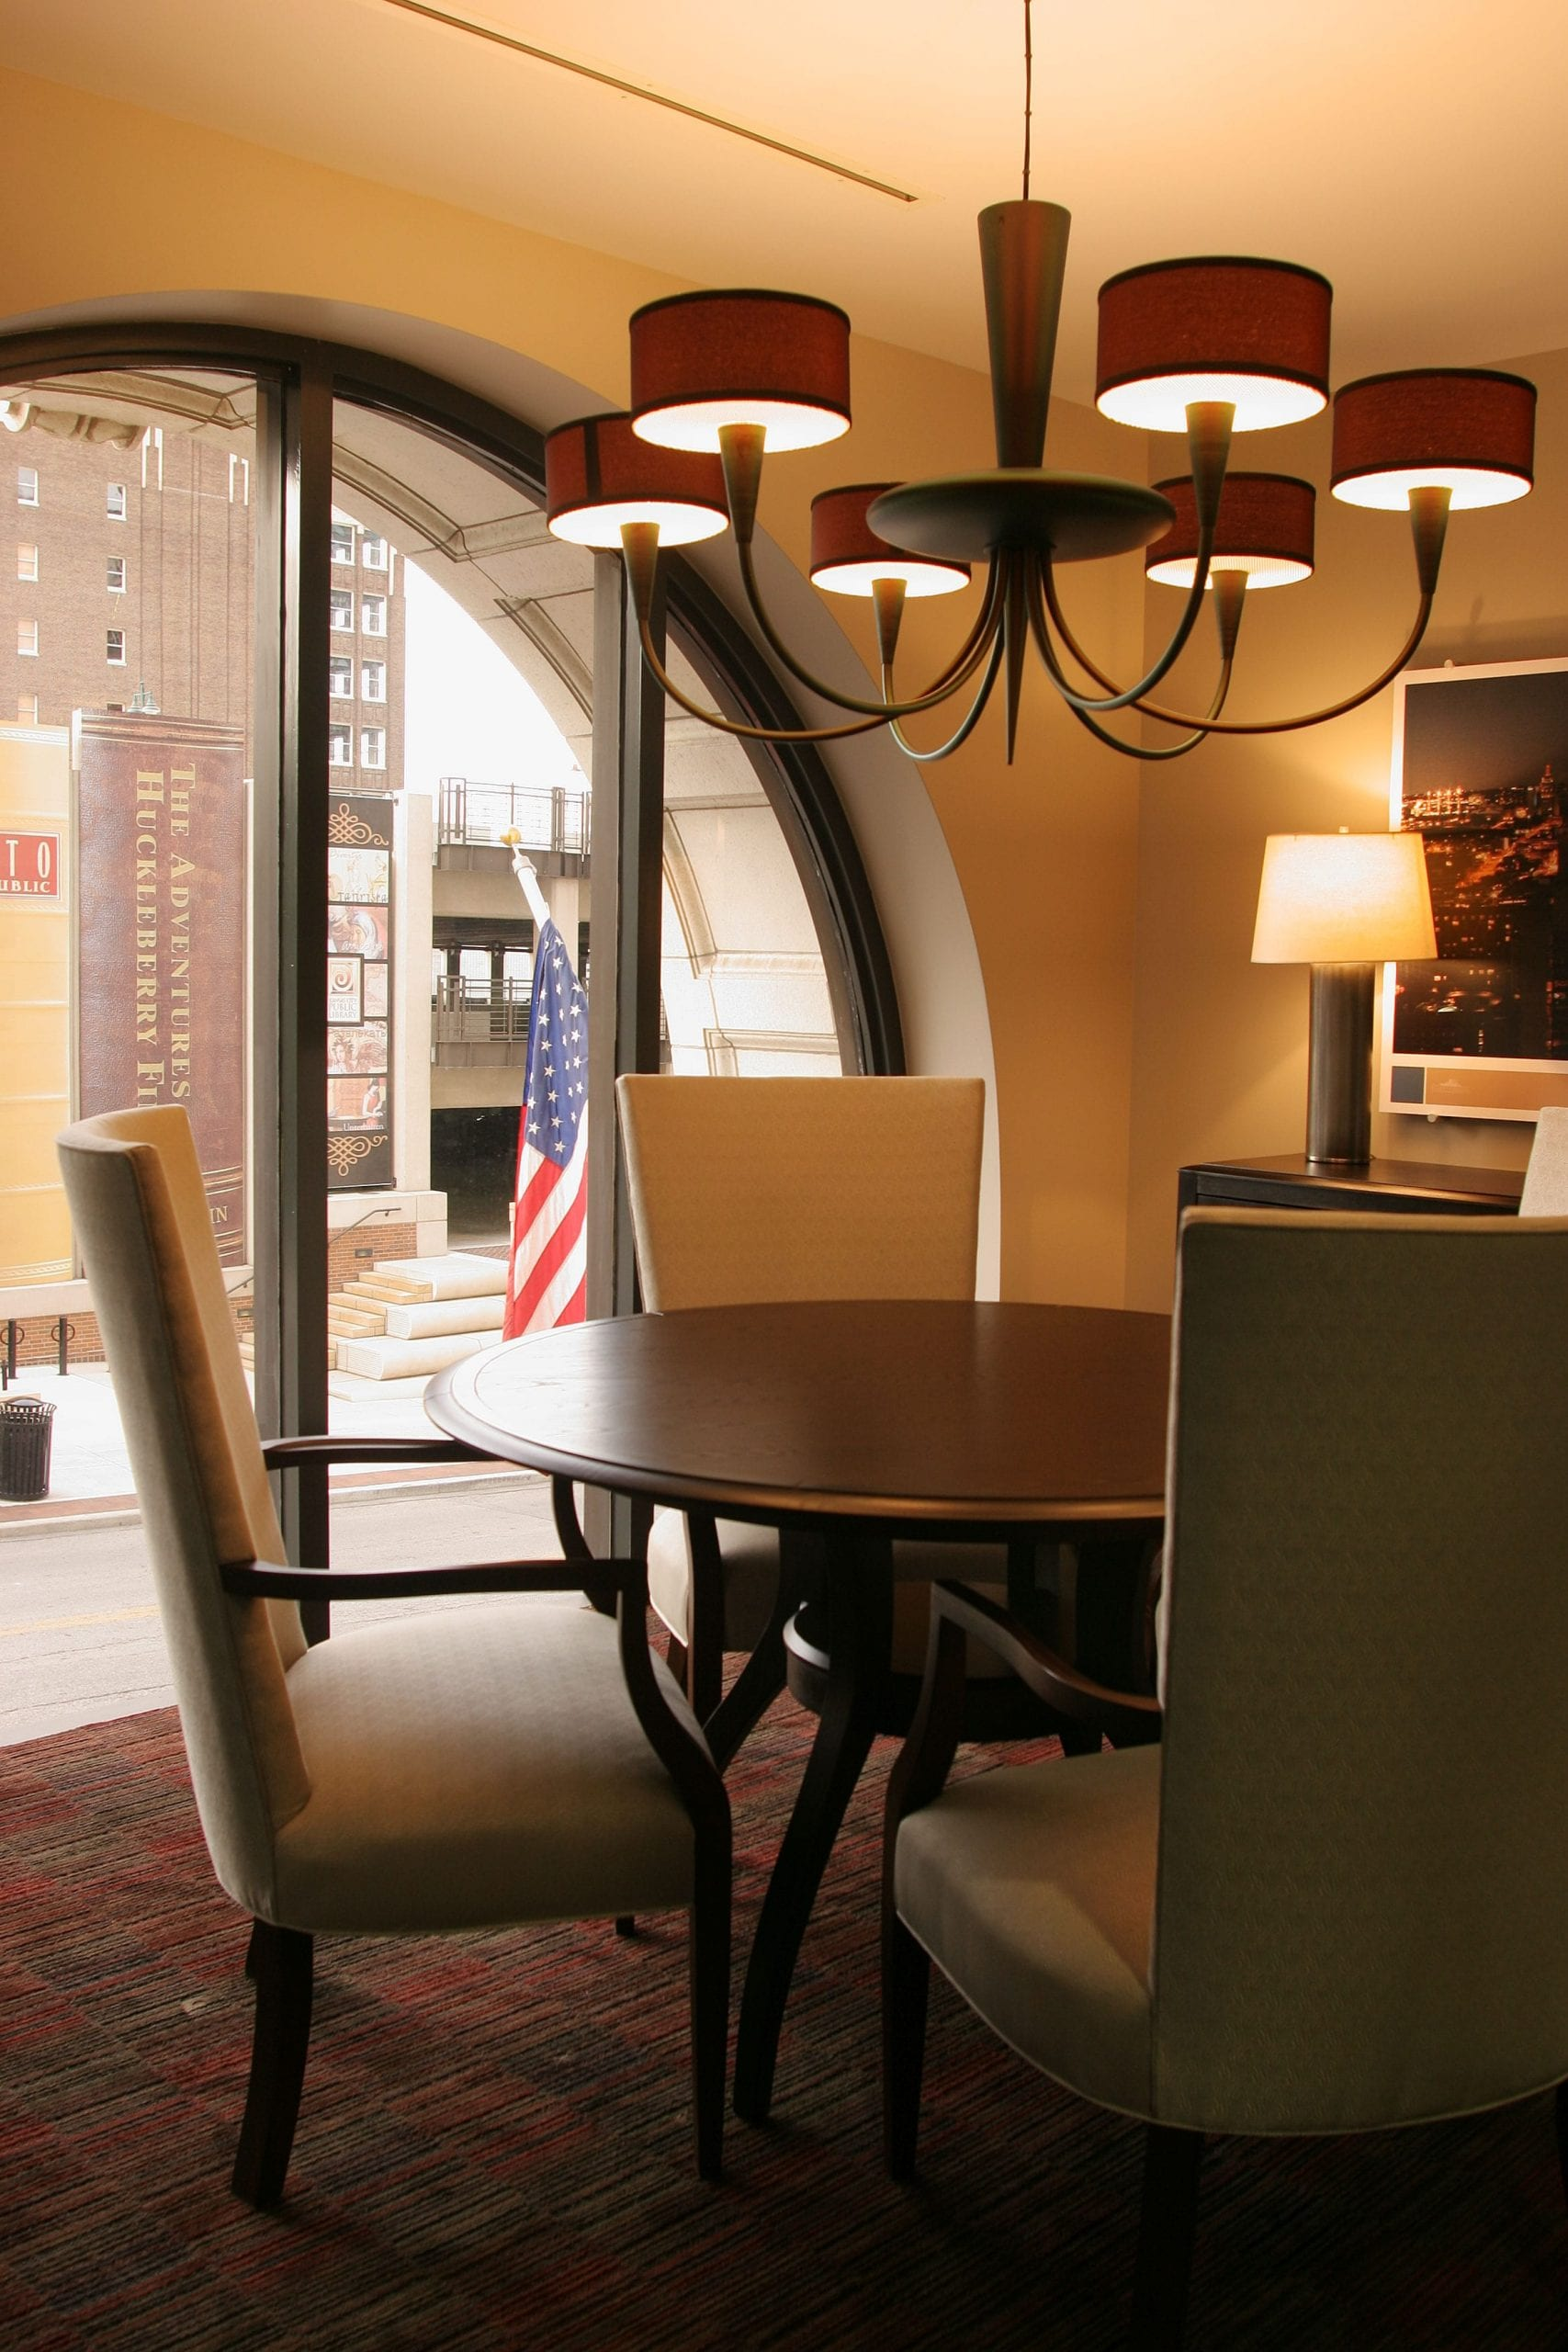 KCLoftCentral is your Downtown Loft and Condo Destination.